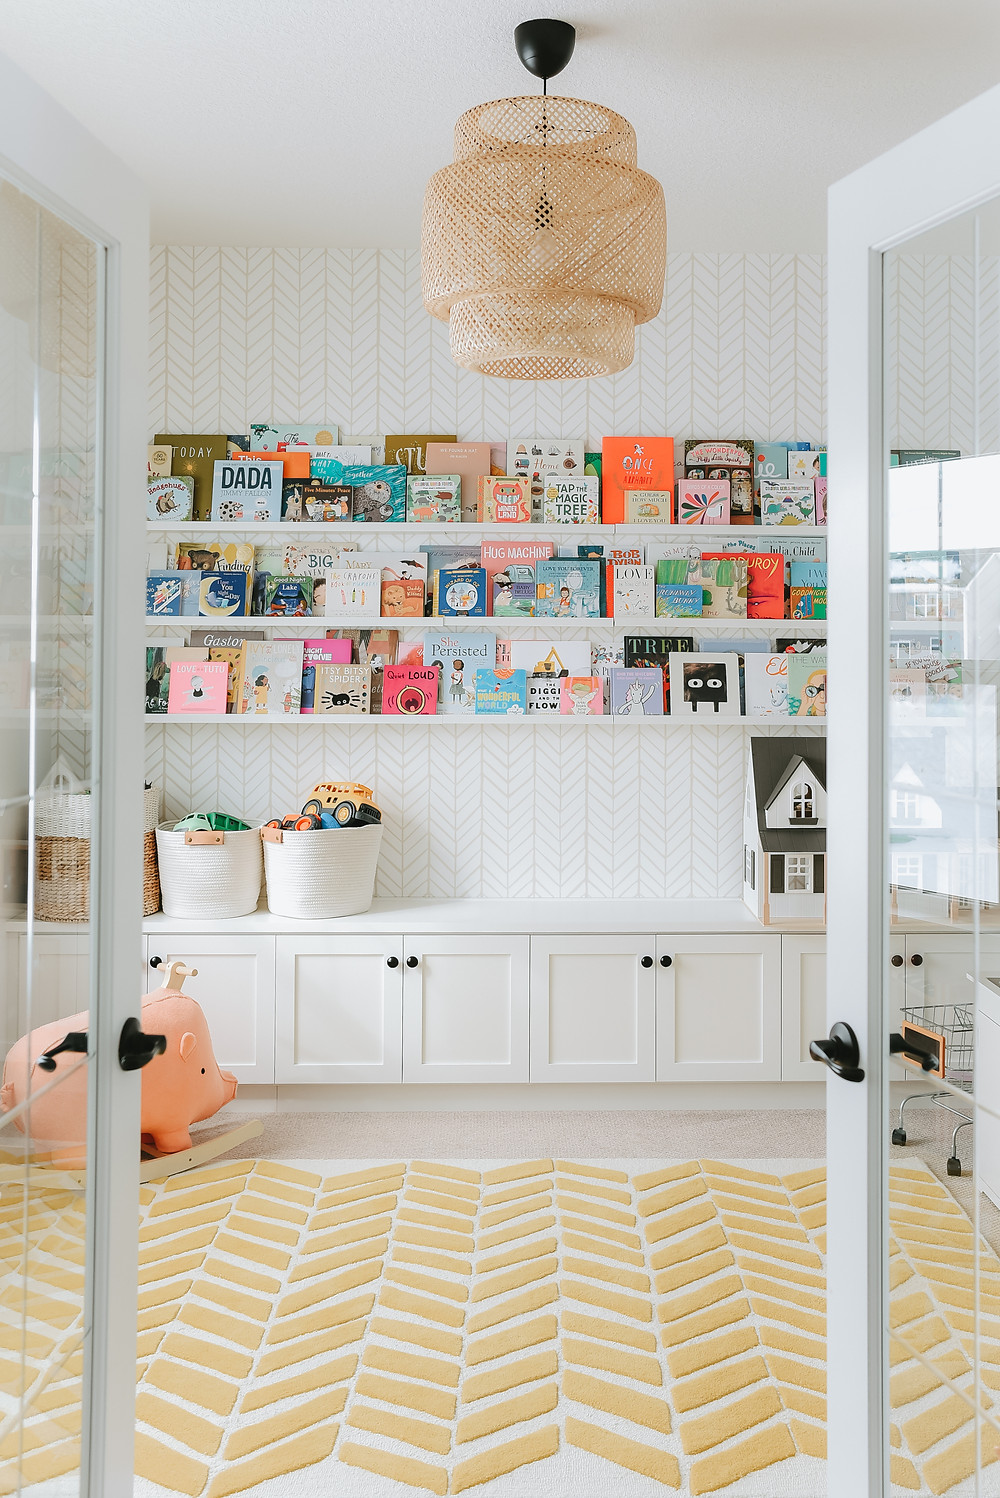 adorable book shelf lining wall in childrens room with wallpapered walls and chevron patterned area rug on floor